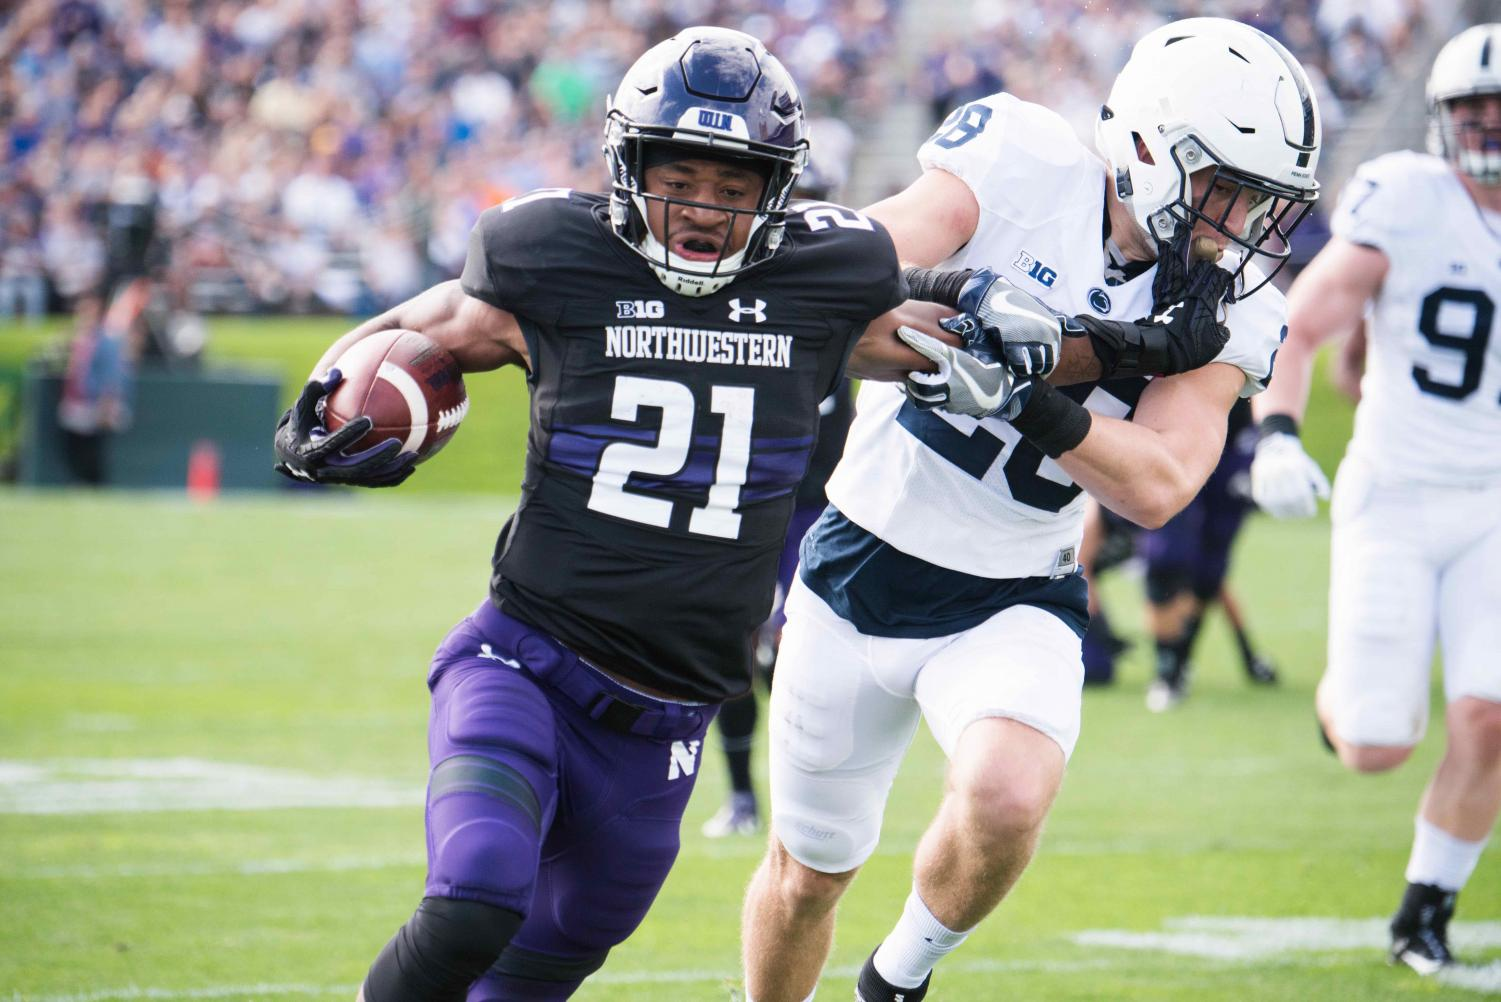 Justin Jackson runs with the football. The senior running back starred in Northwestern's win over Pittsburgh in the Pinstripe Bowl last December.